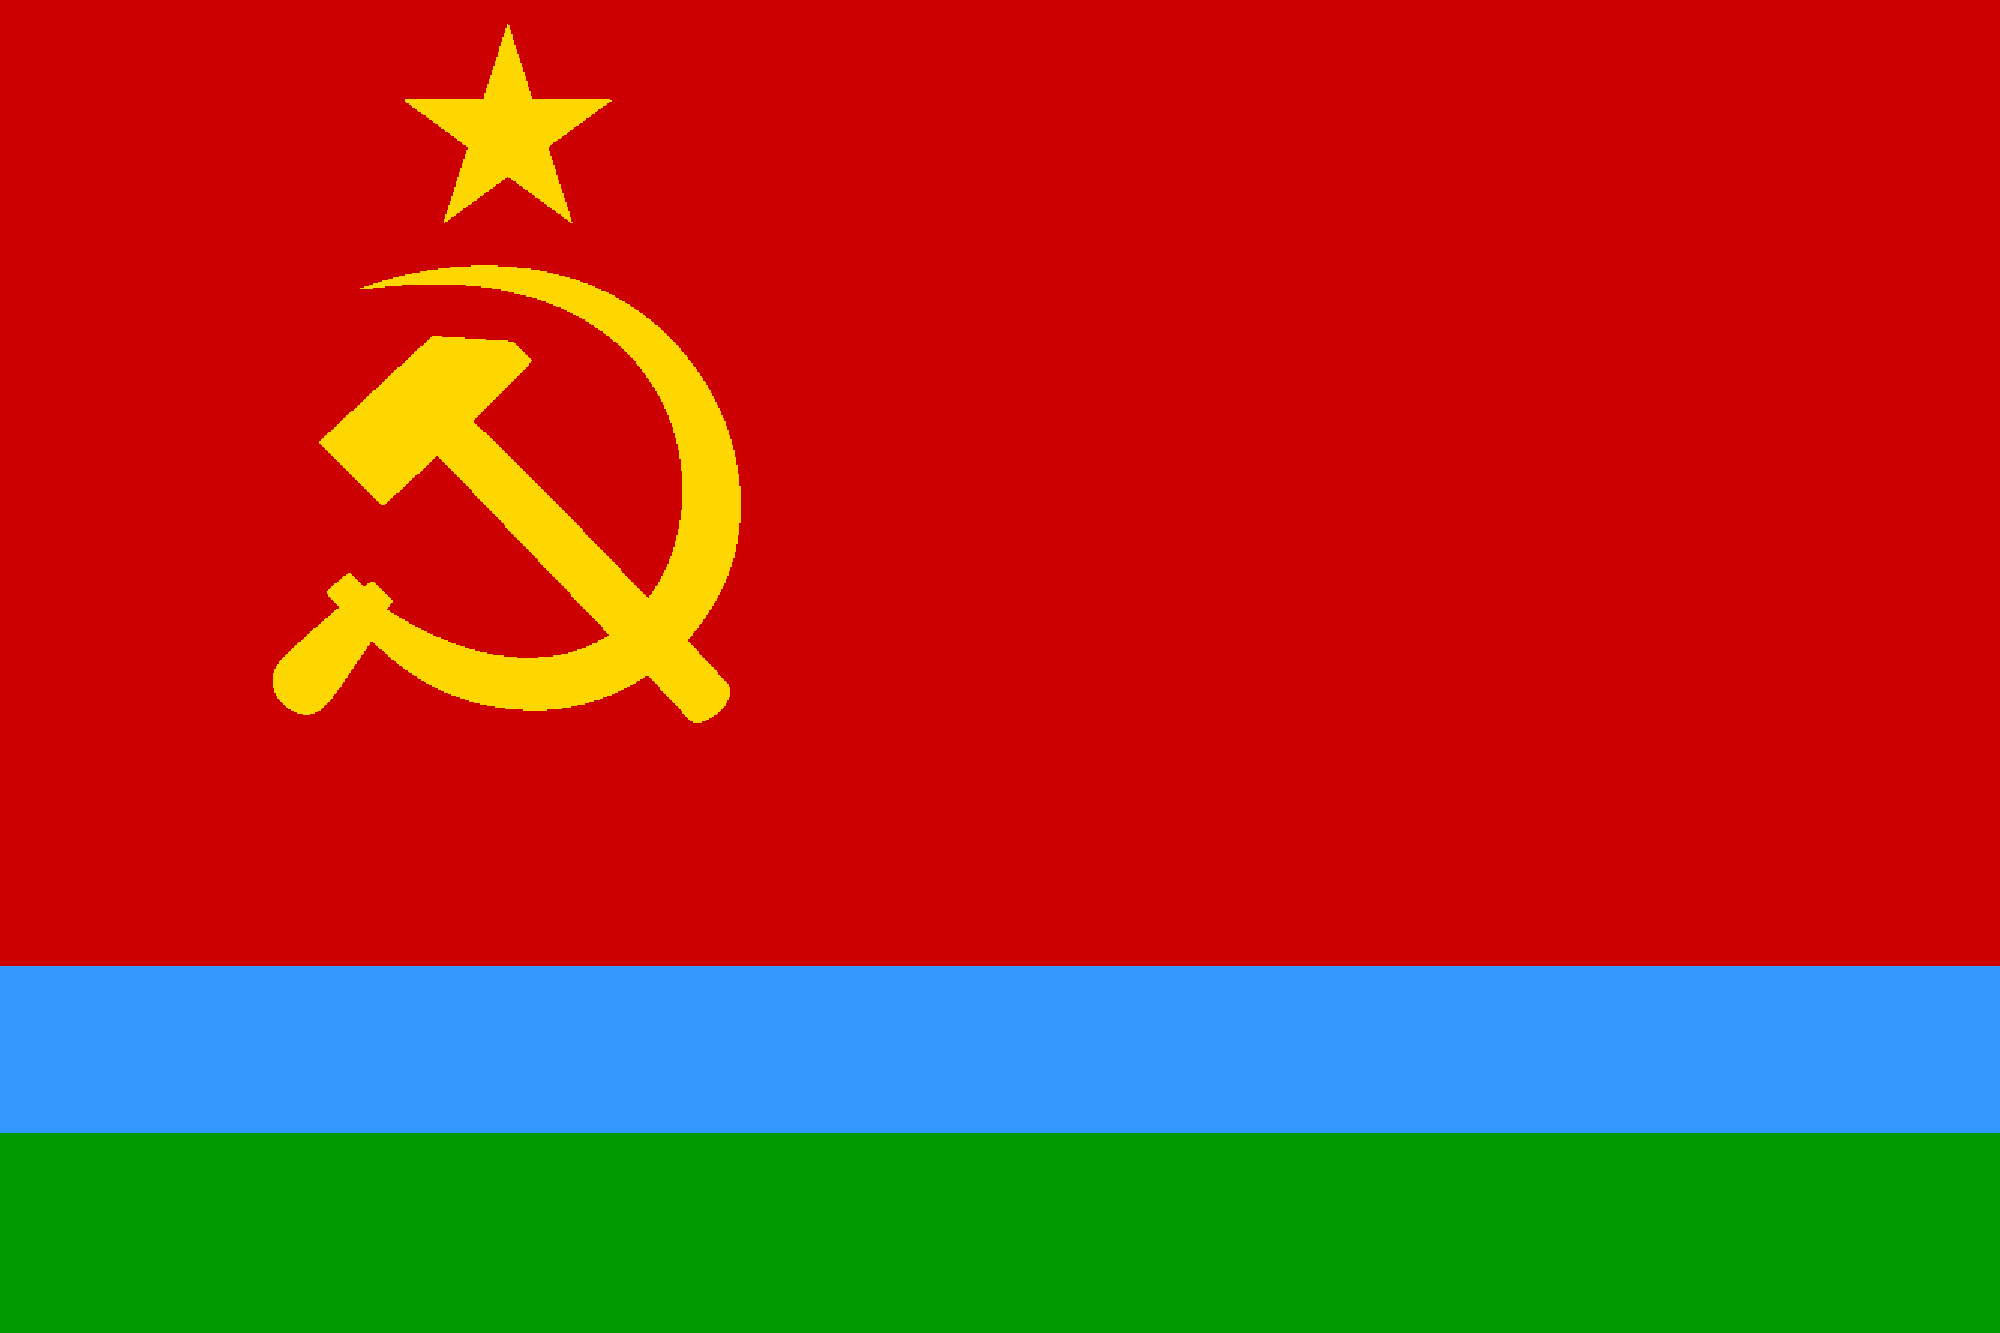 Communist Party of Finland (Marxist-Leninist)